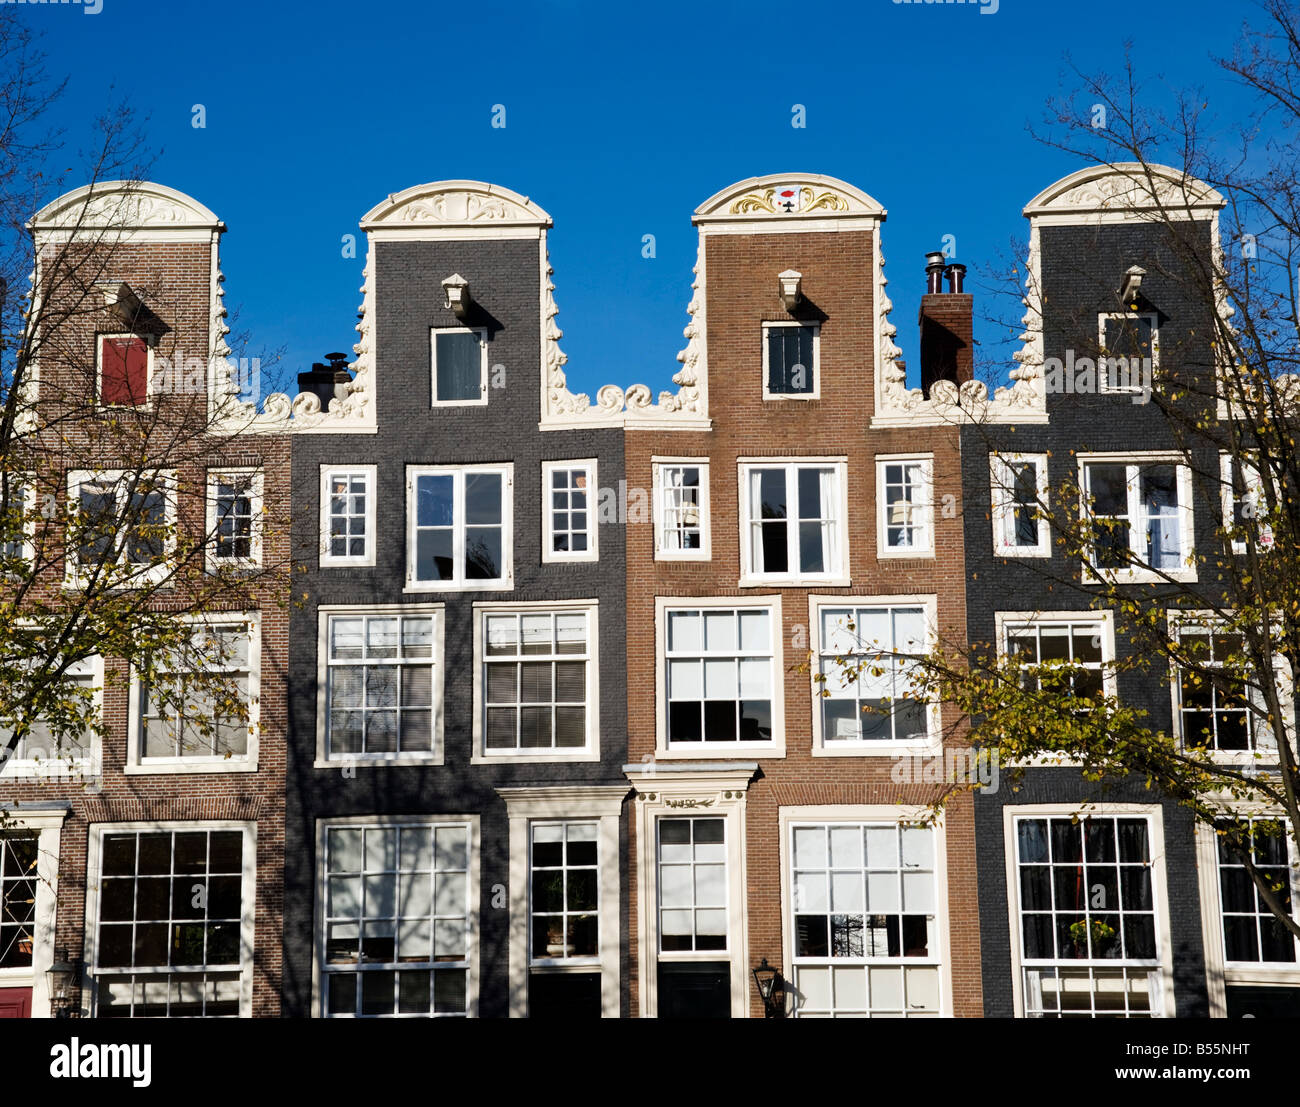 detail of gable roofs on old historic houses in  Amsterdam Netherlands 2008 - Stock Image